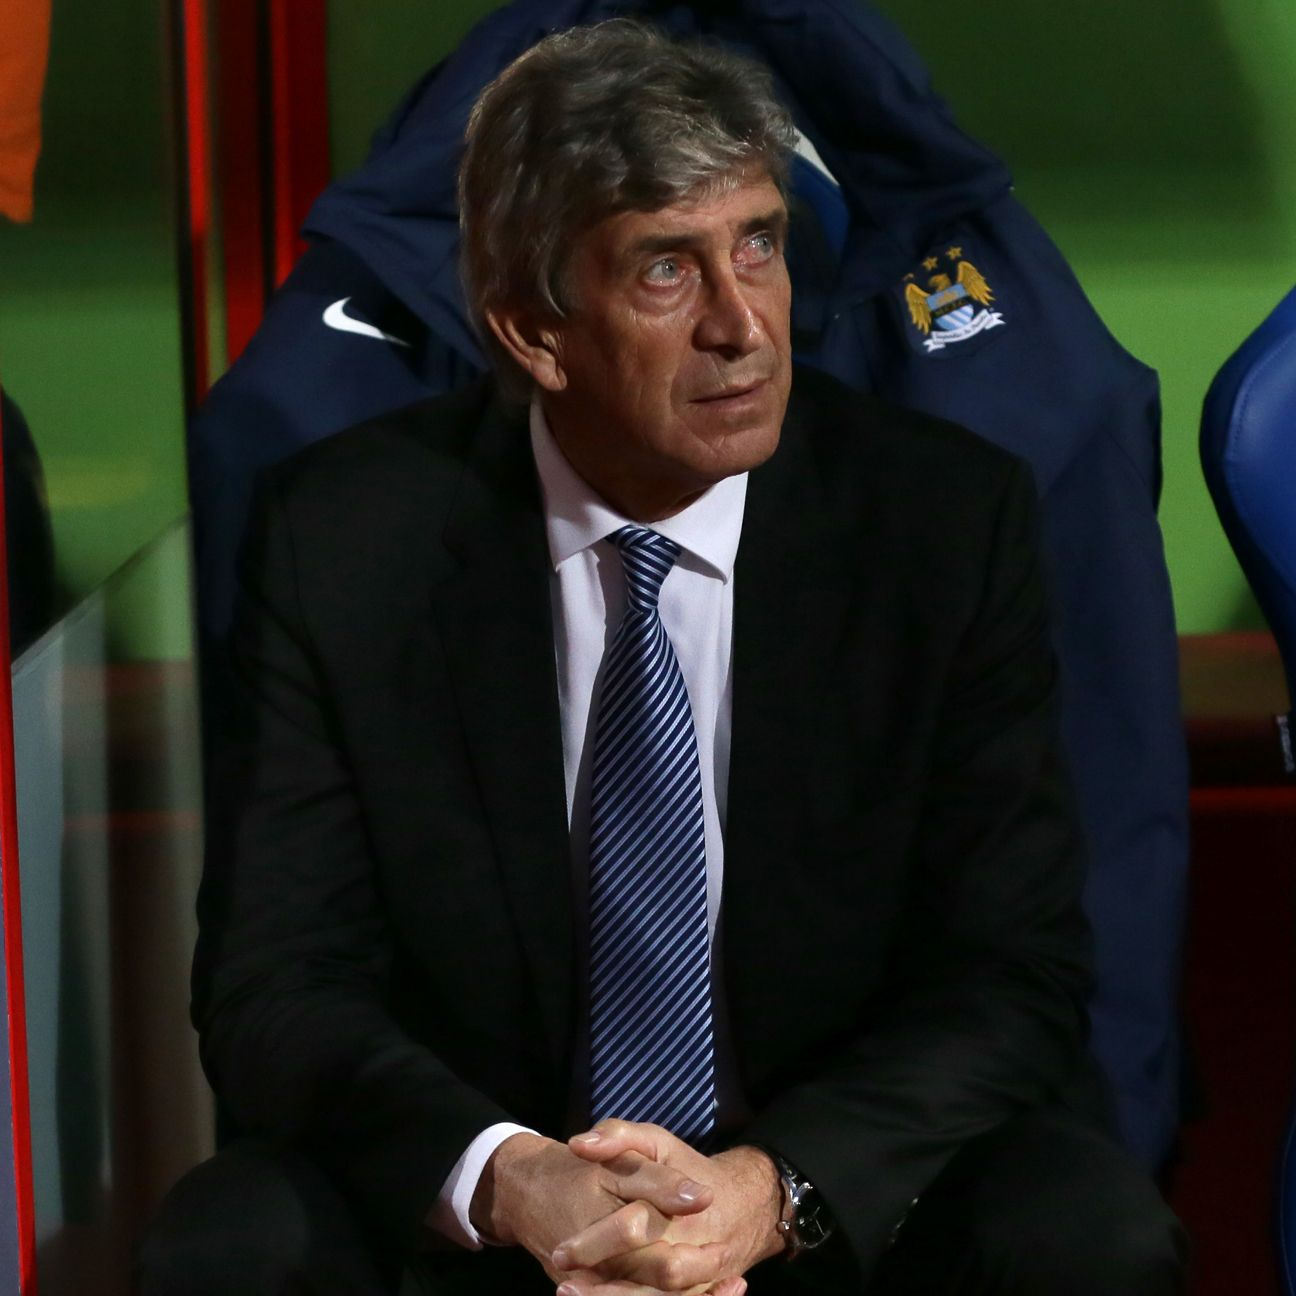 Manuel Pellegrini and Manchester City cannot afford to sit on the sidelines and watch the transfer window pass by.